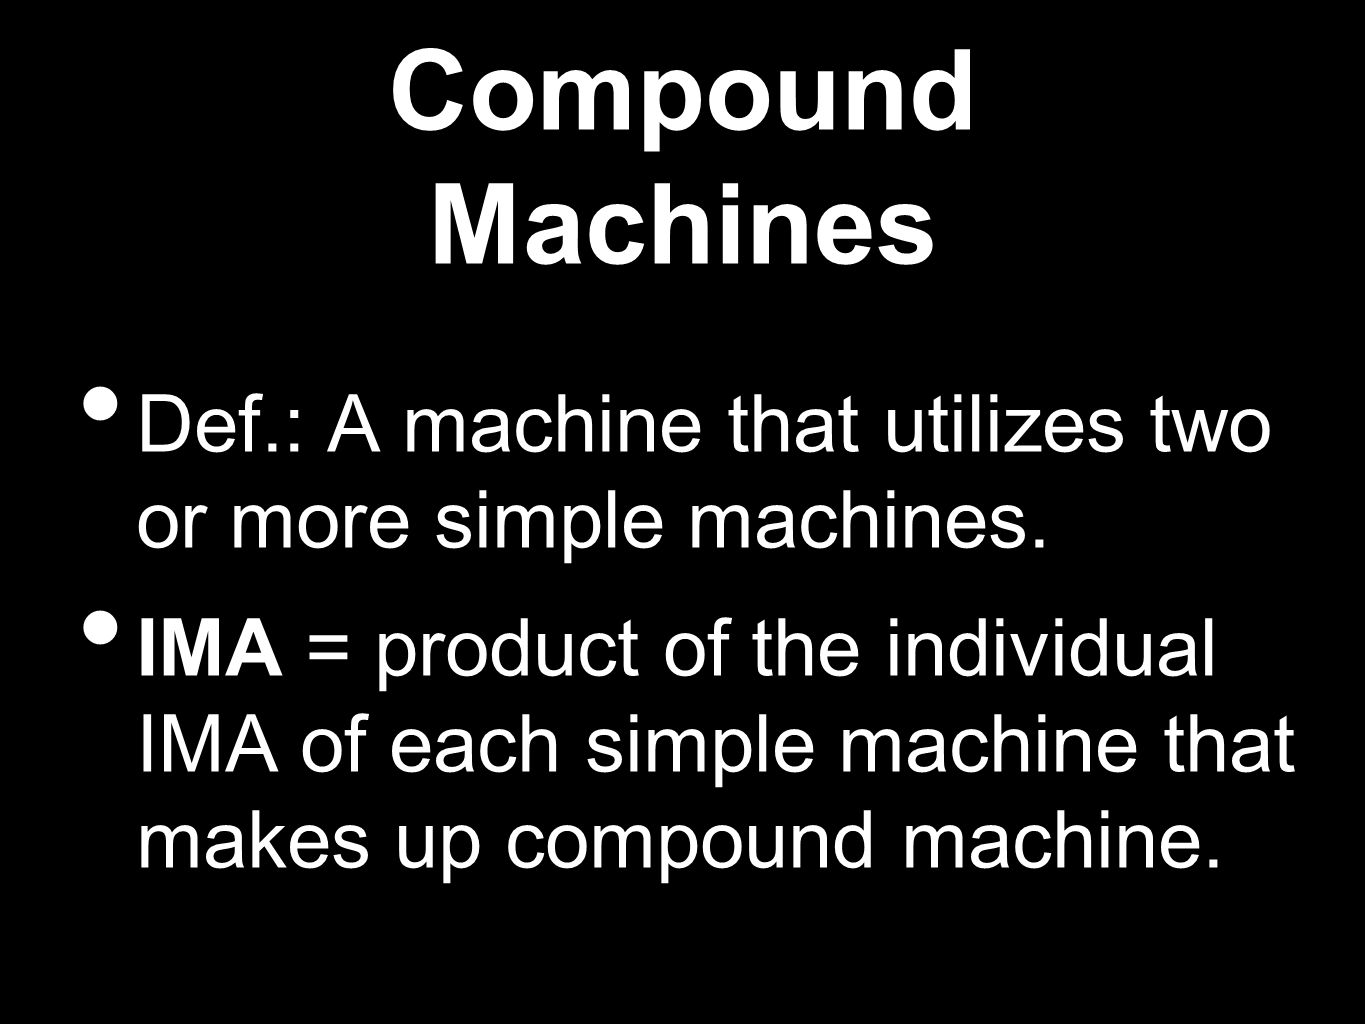 Compound Machines Def.: A machine that utilizes two or more simple machines.